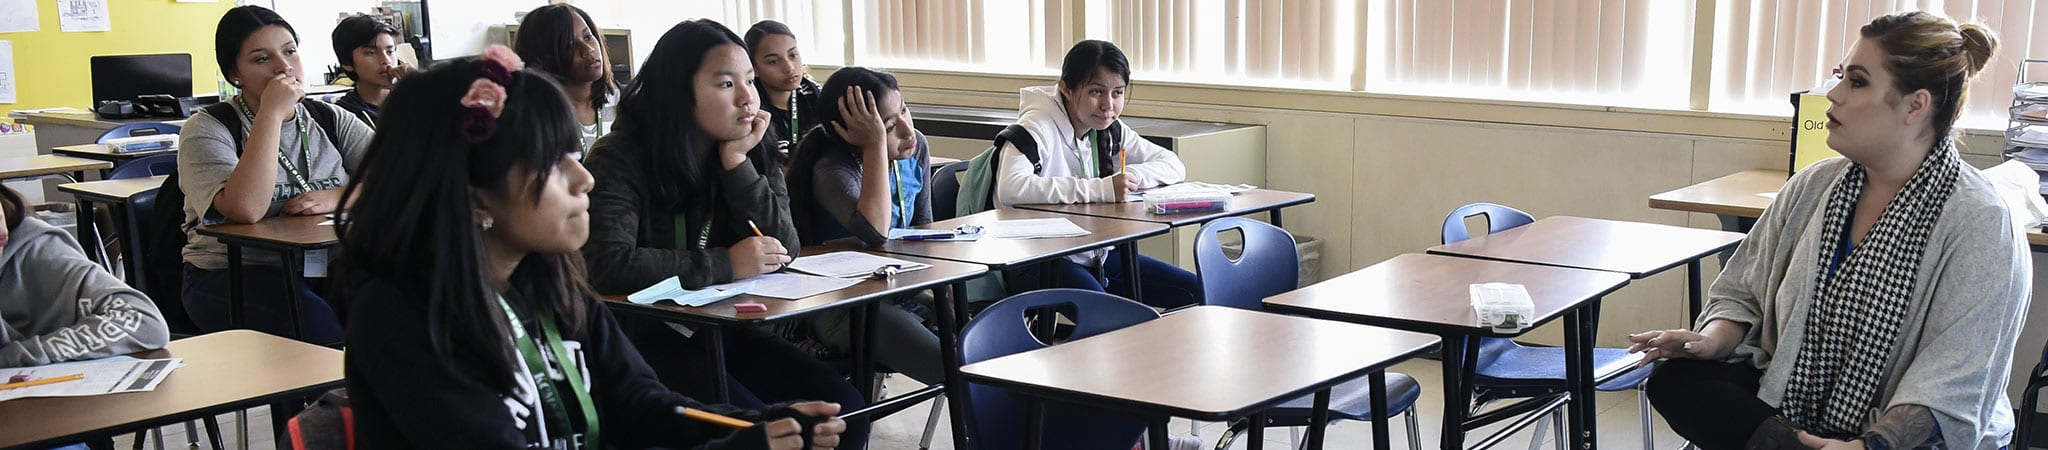 Several students sitting at their desks in a classroom face the teacher